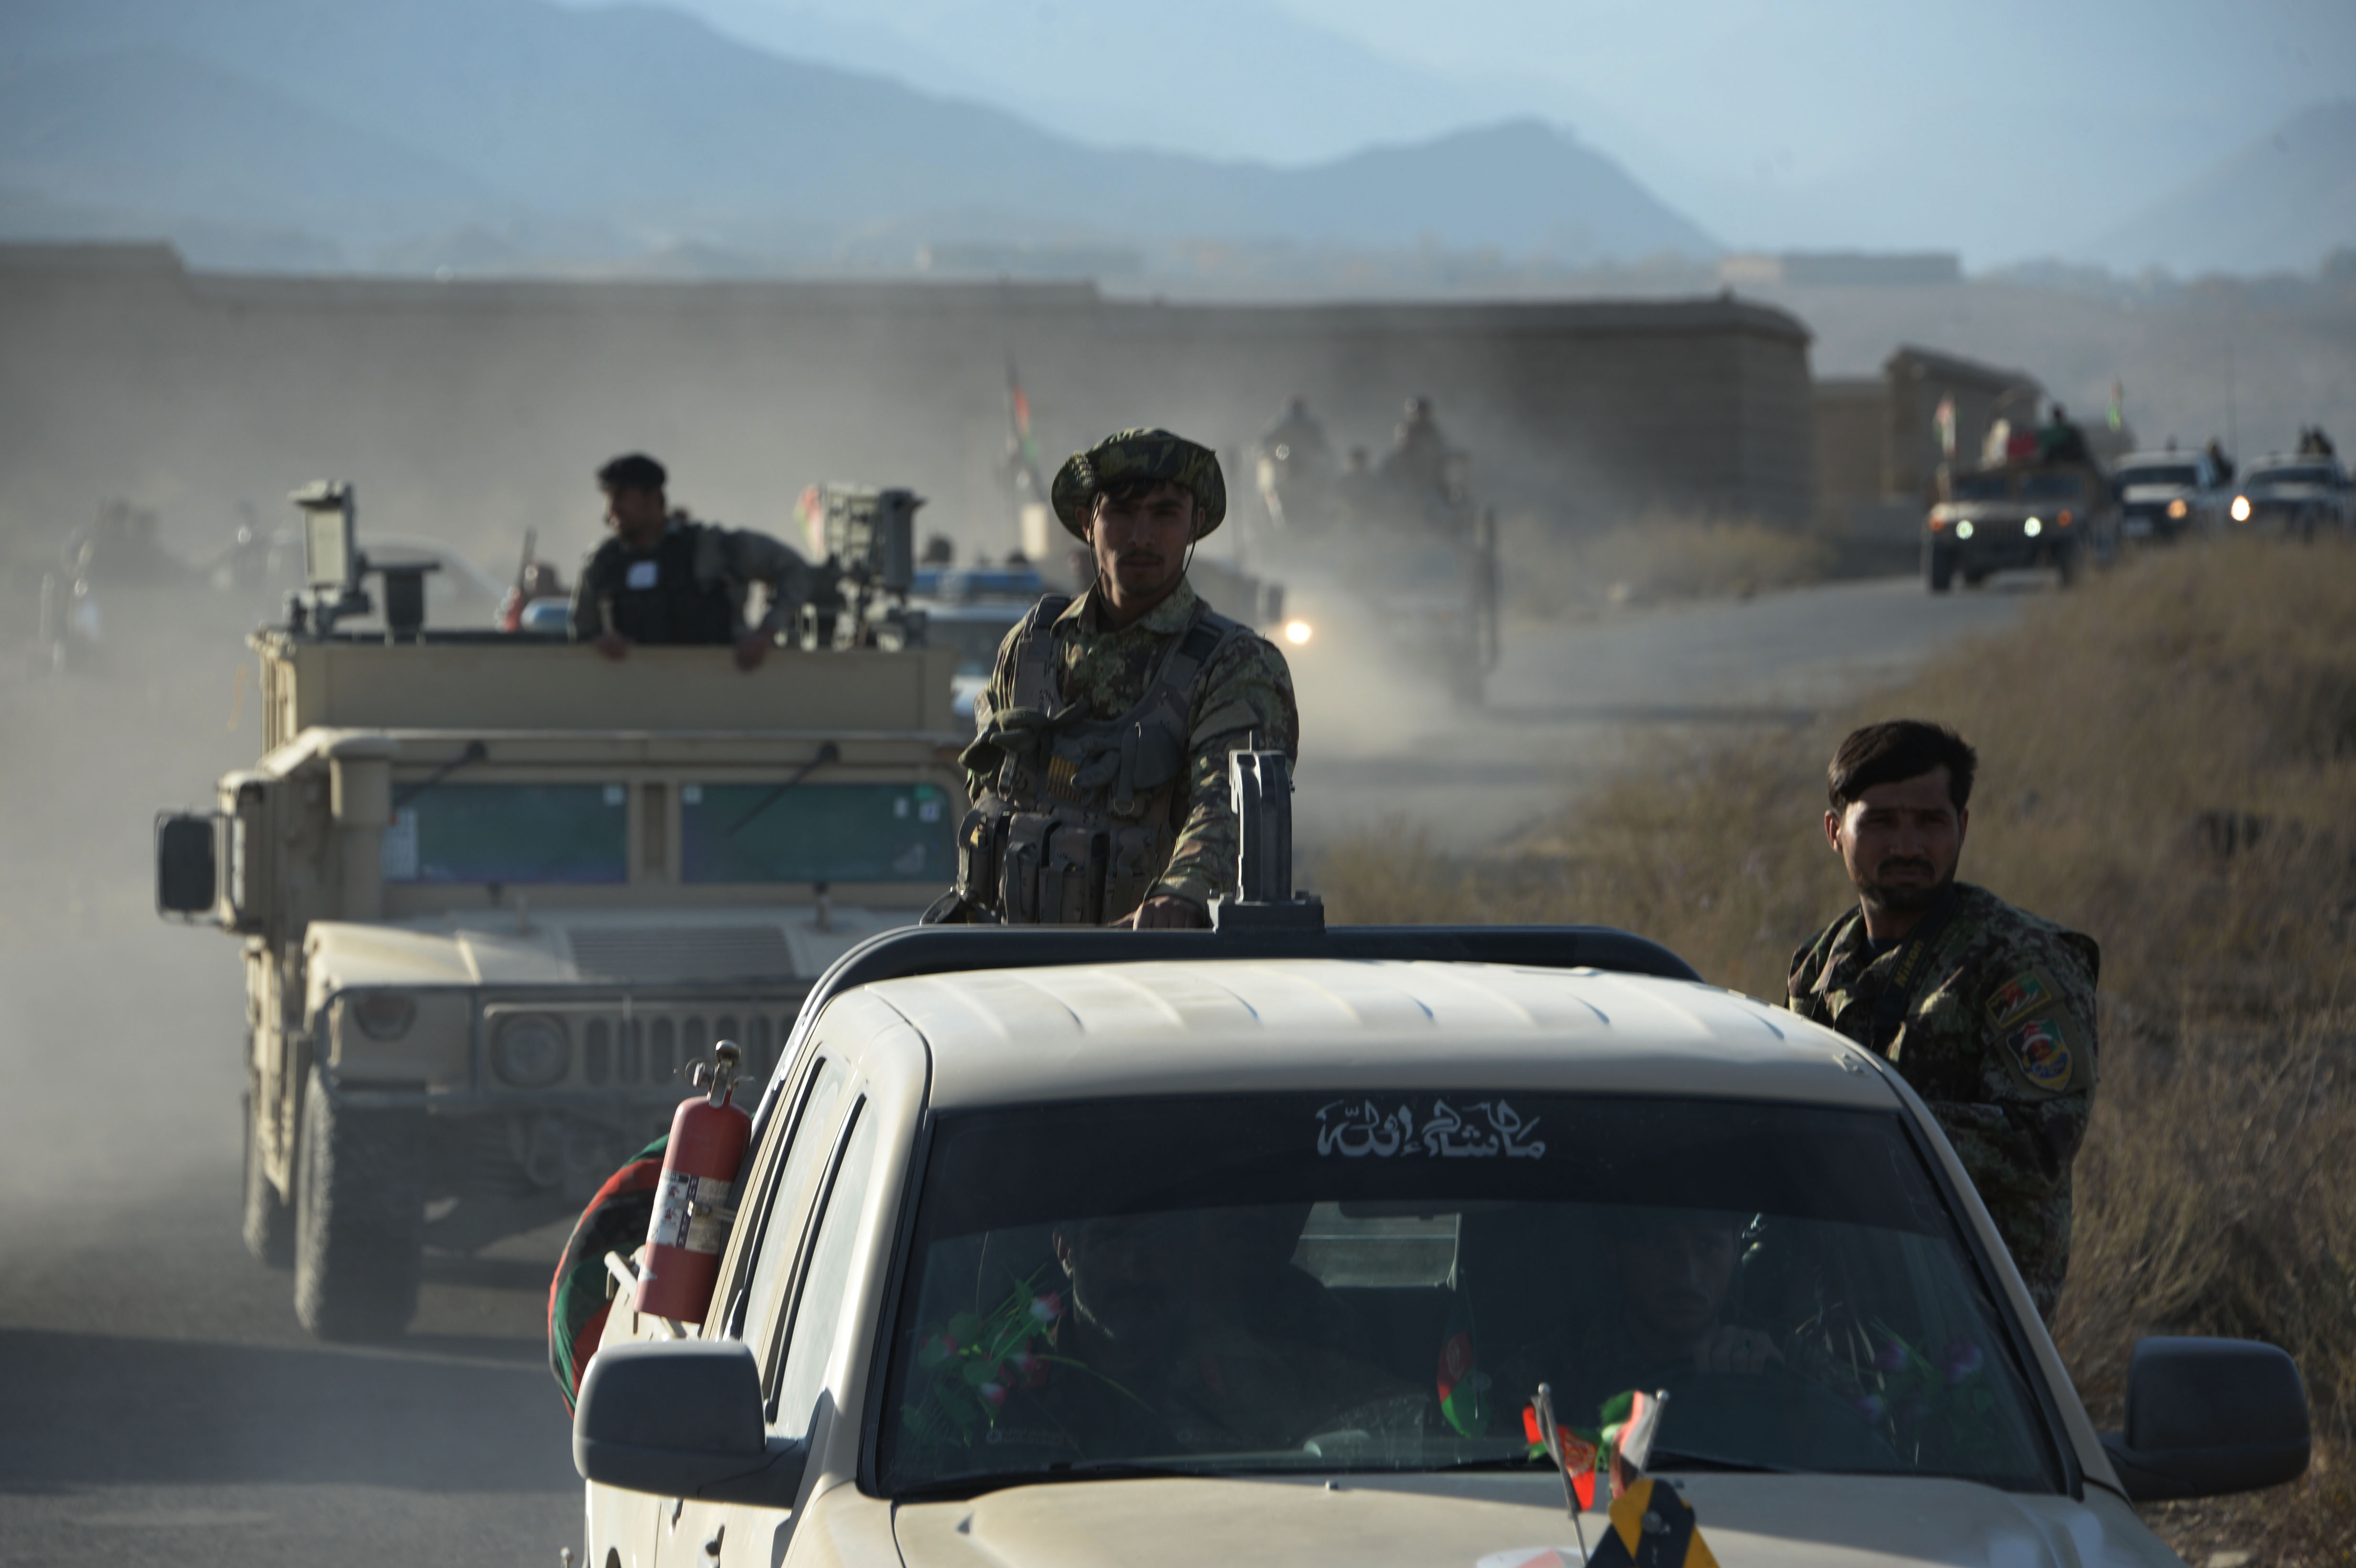 Afghanistan determined to stop ISIL expansion: officials